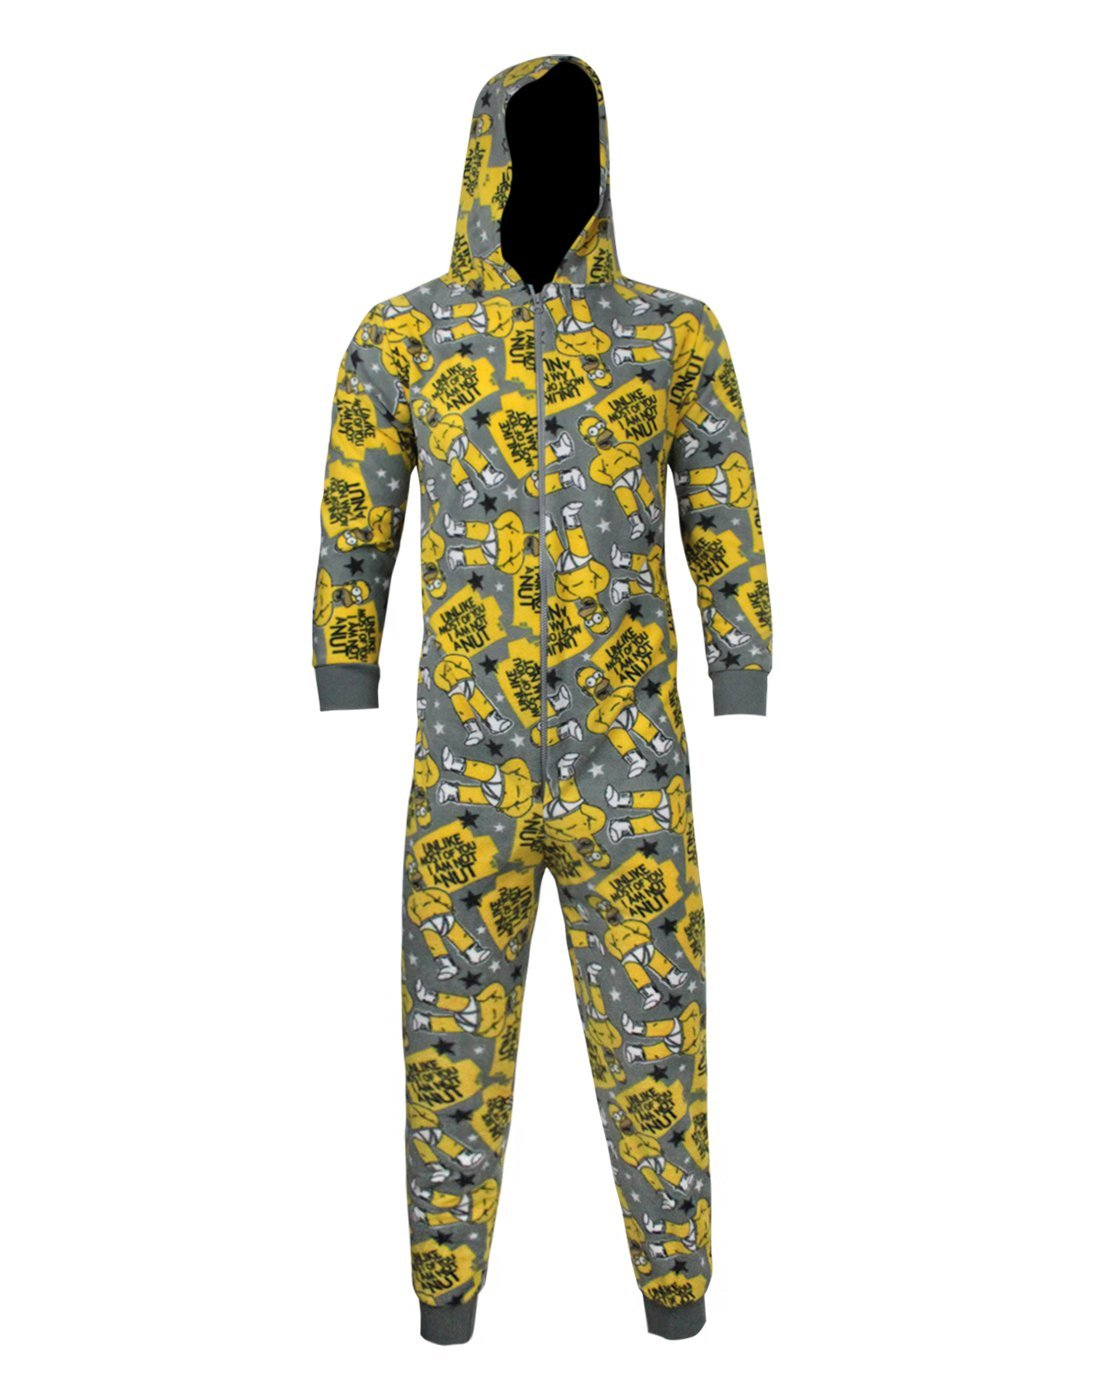 Official Simpsons Men's Onesie